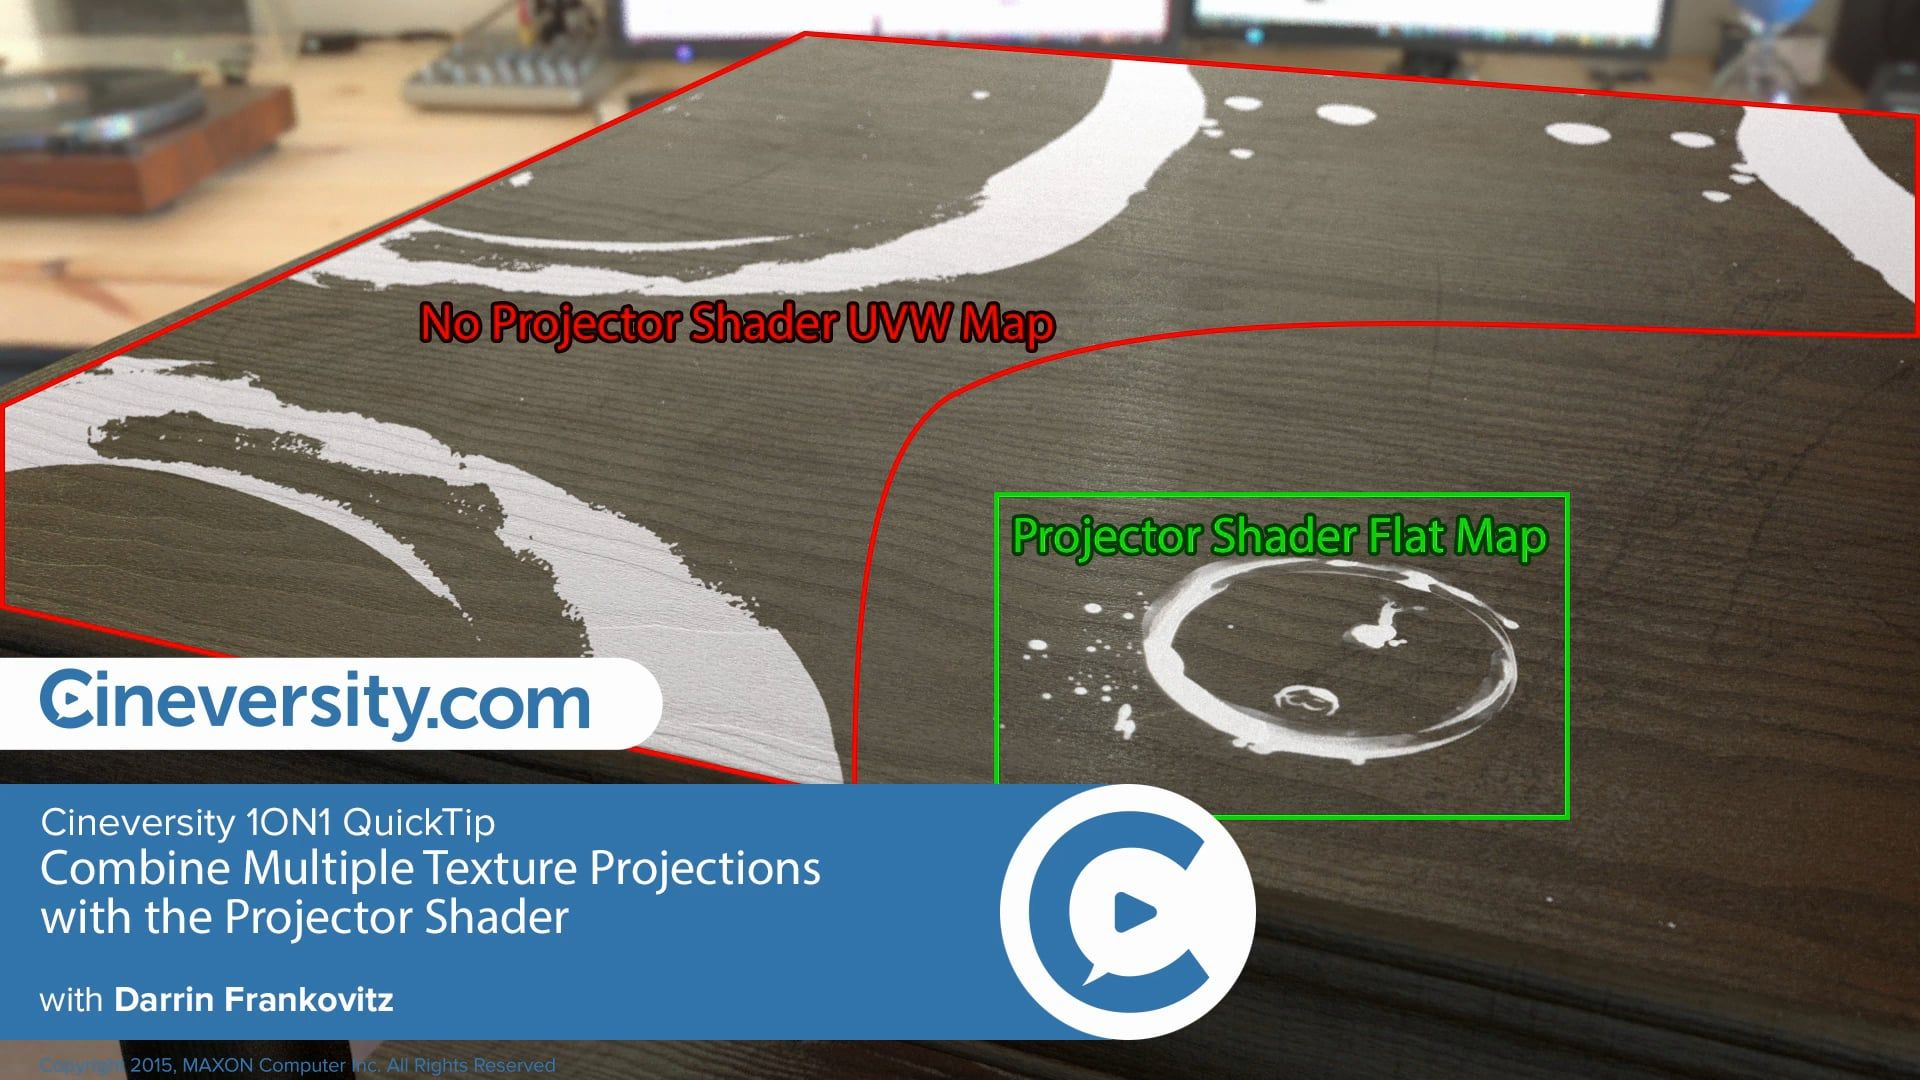 Combine Multiple Texture Projections with the Projector